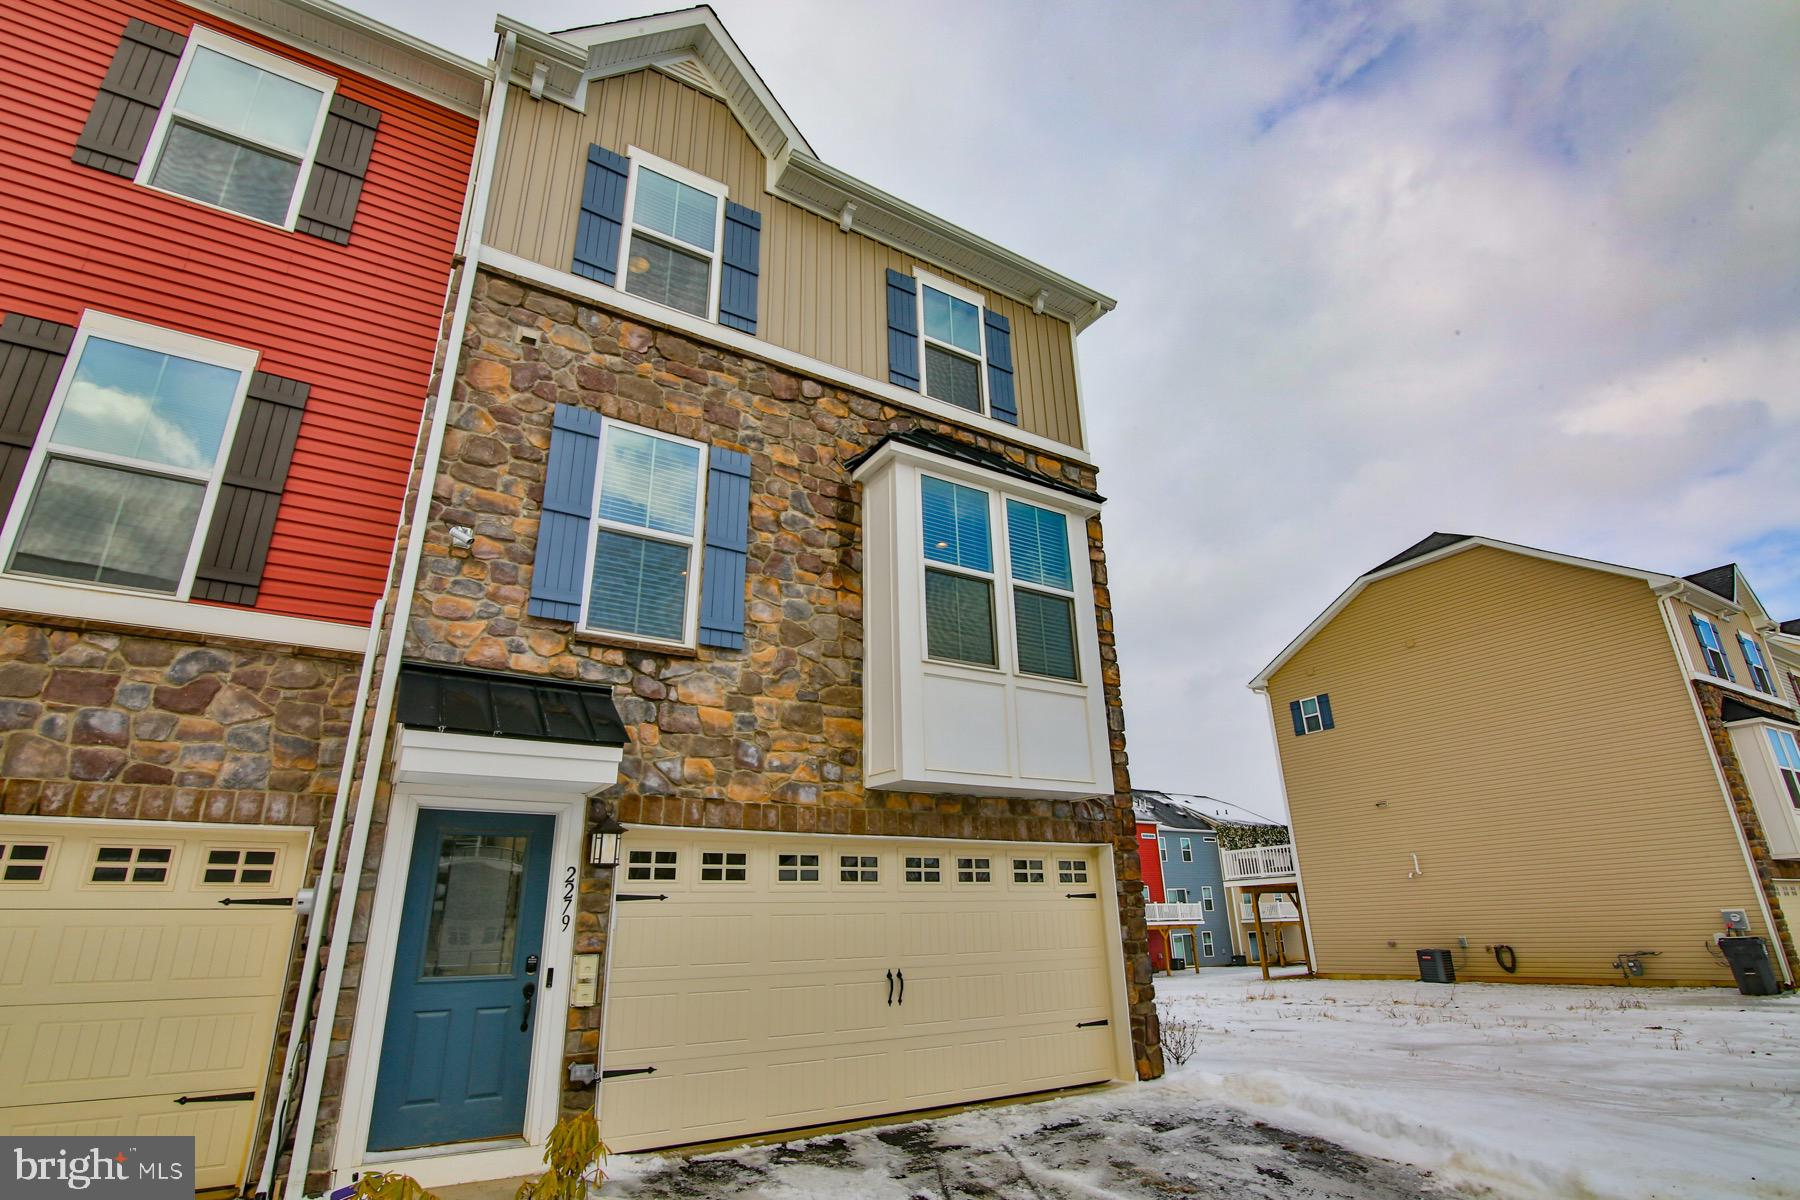 2279 RAYA WAY, EASTON, PA 18045